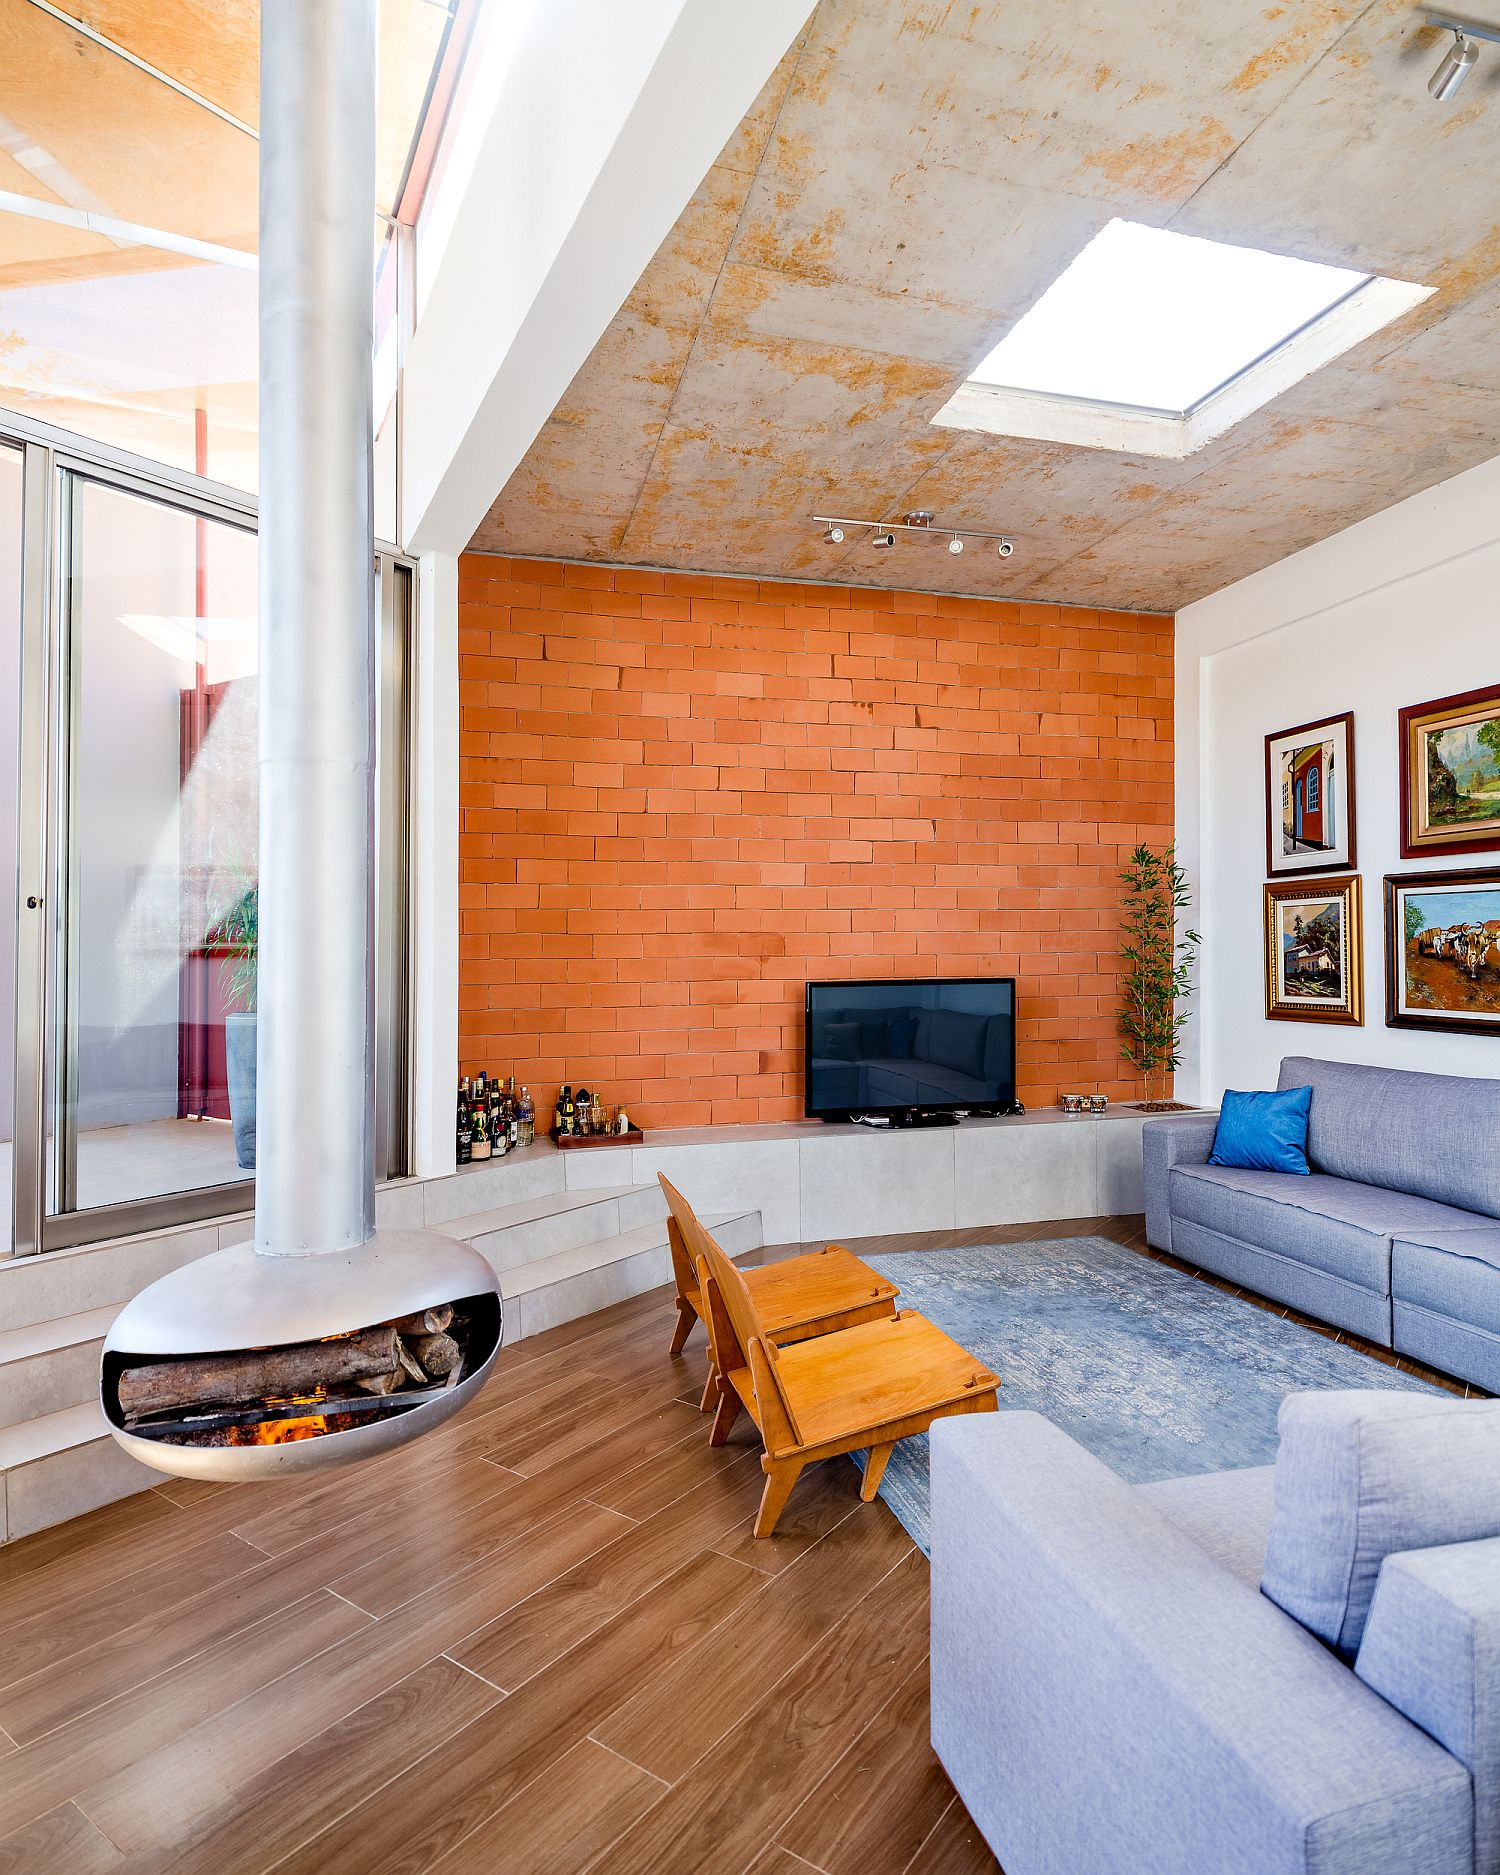 Tiled accent wall for the living area with skylight above